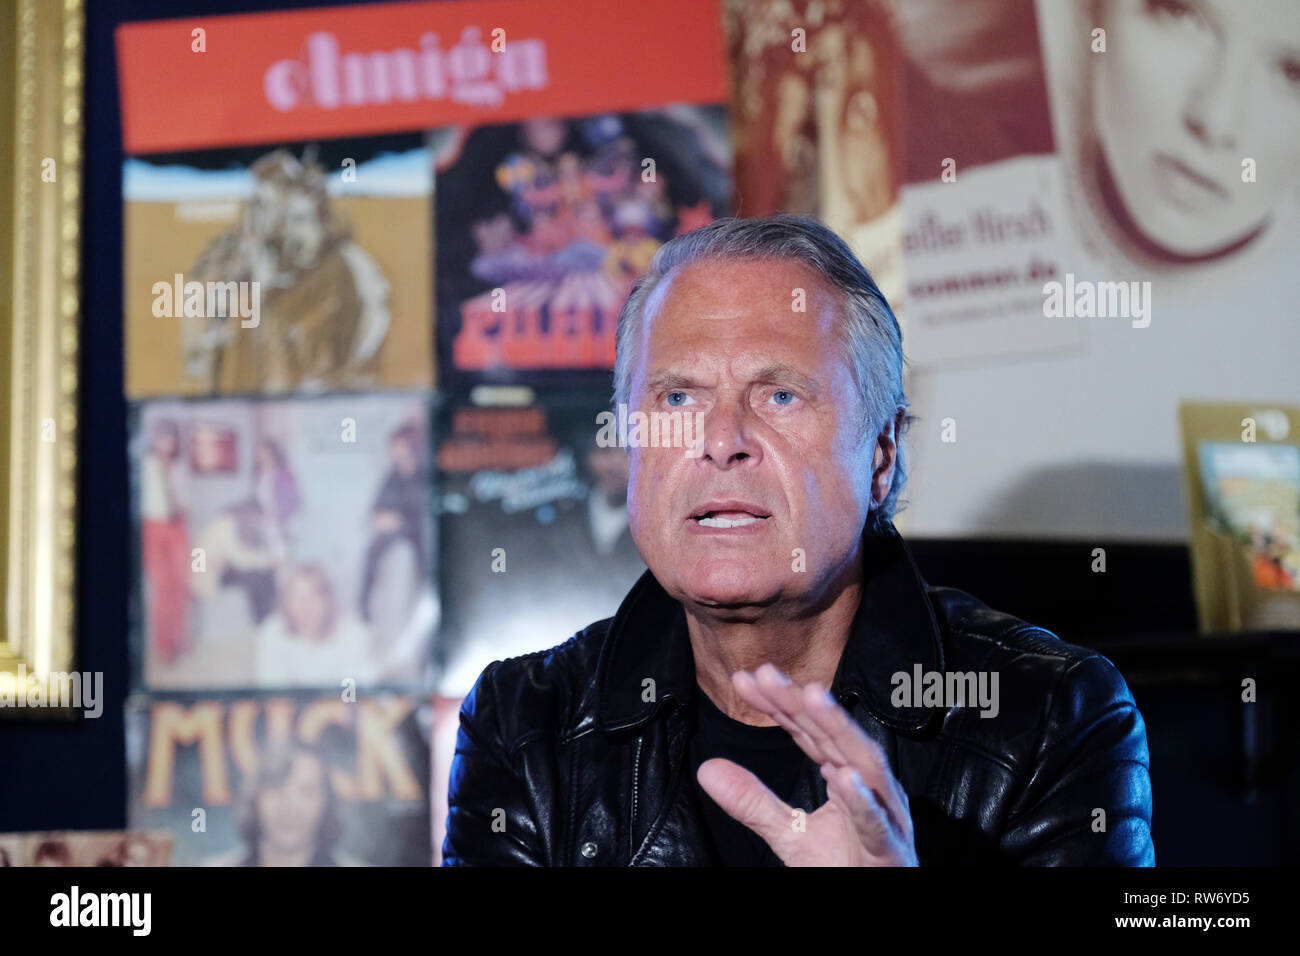 Dresden, Germany. 15th Feb, 2019. Jörg Stempel, former head of the GDR record company Amiga, speaks at the press event in the boulevard theatre. The premiere of the play 'The Legend of Hot Summer' will take place there on 10.03.2019. The theatre show is about the 'Sound of the East'. (to dpa ''hot summer': Dresden stage show celebrates the sound of the east') Credit: Sebastian Willnow/dpa-Zentralbild/dpa/Alamy Live News - Stock Image